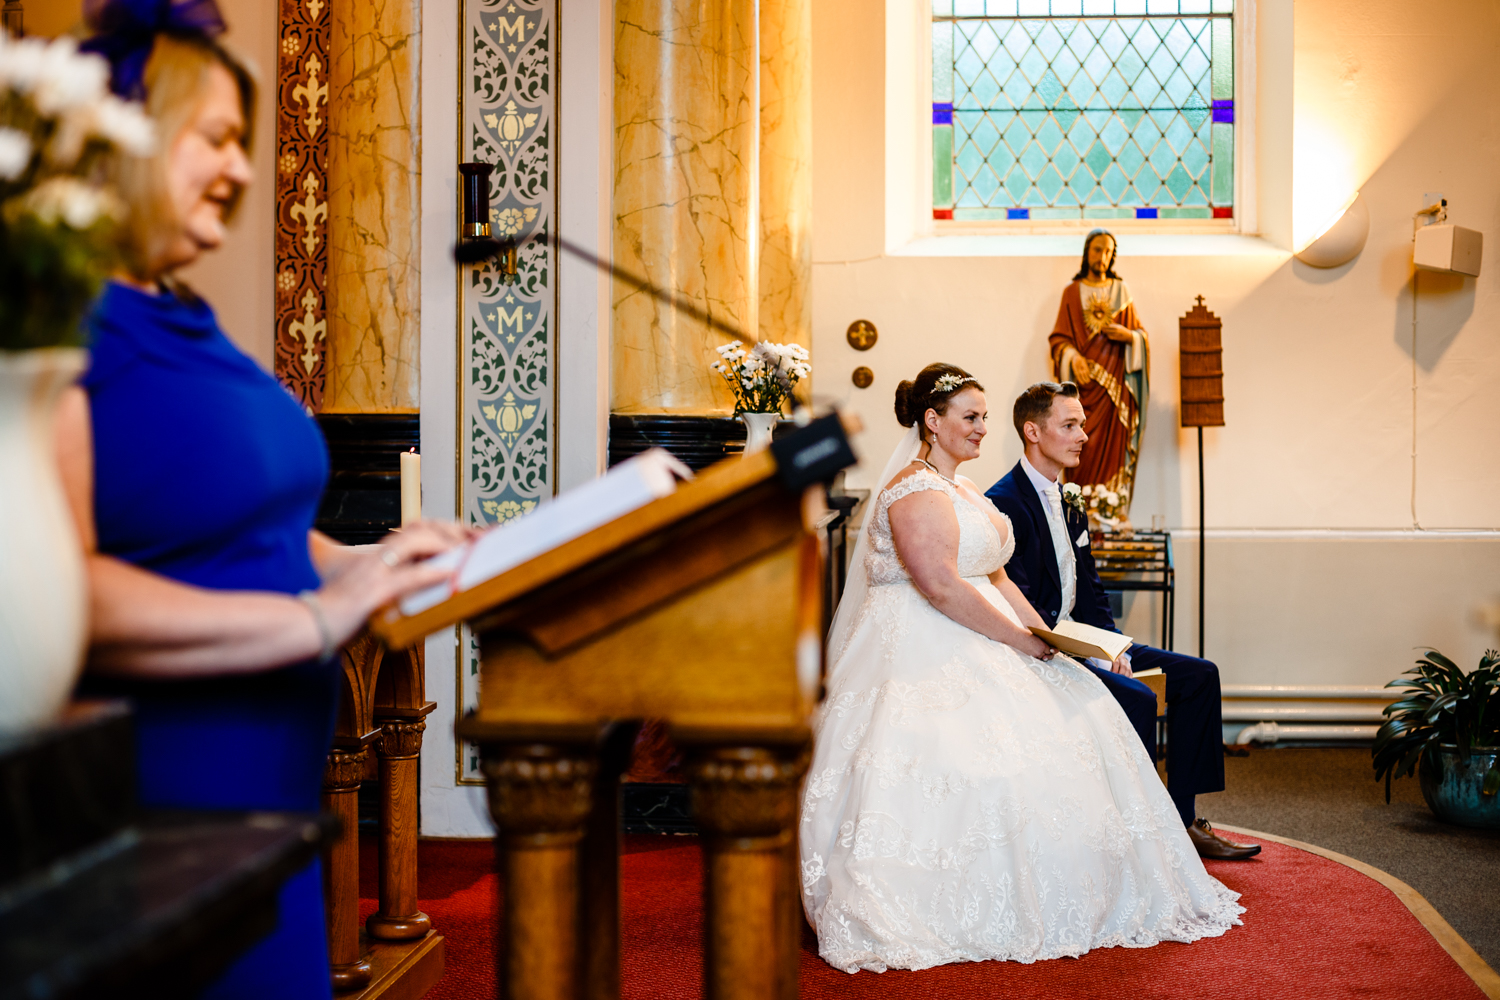 Lancashire-wedding-photographer-adele-and-alex-056.jpg